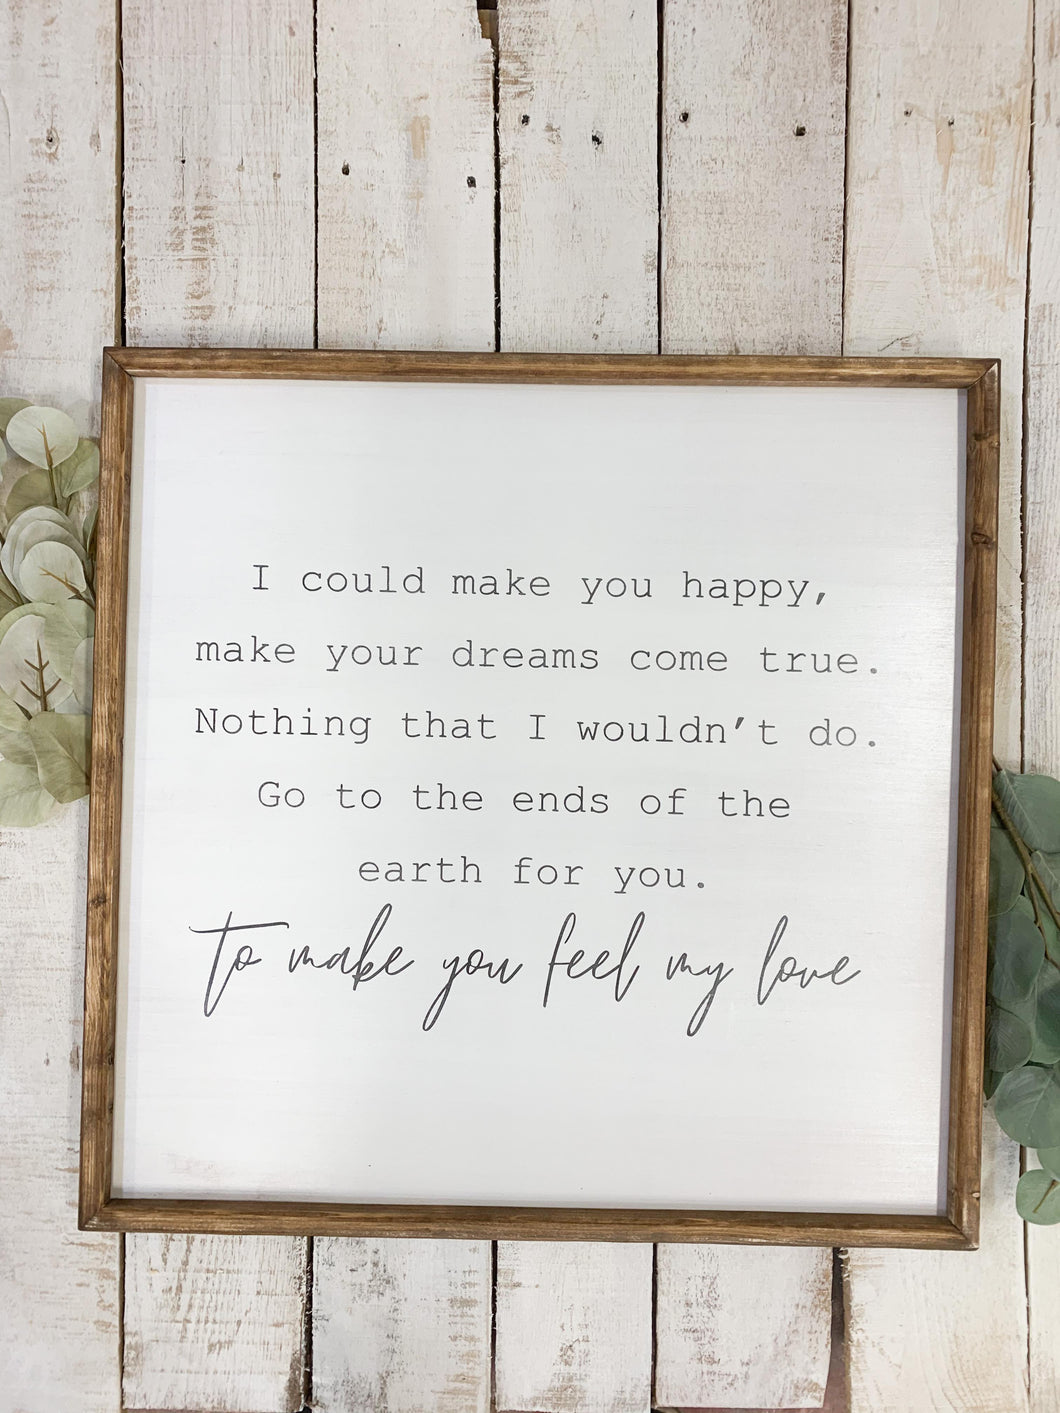 To Make You Feel My Love Wood Frame Sign